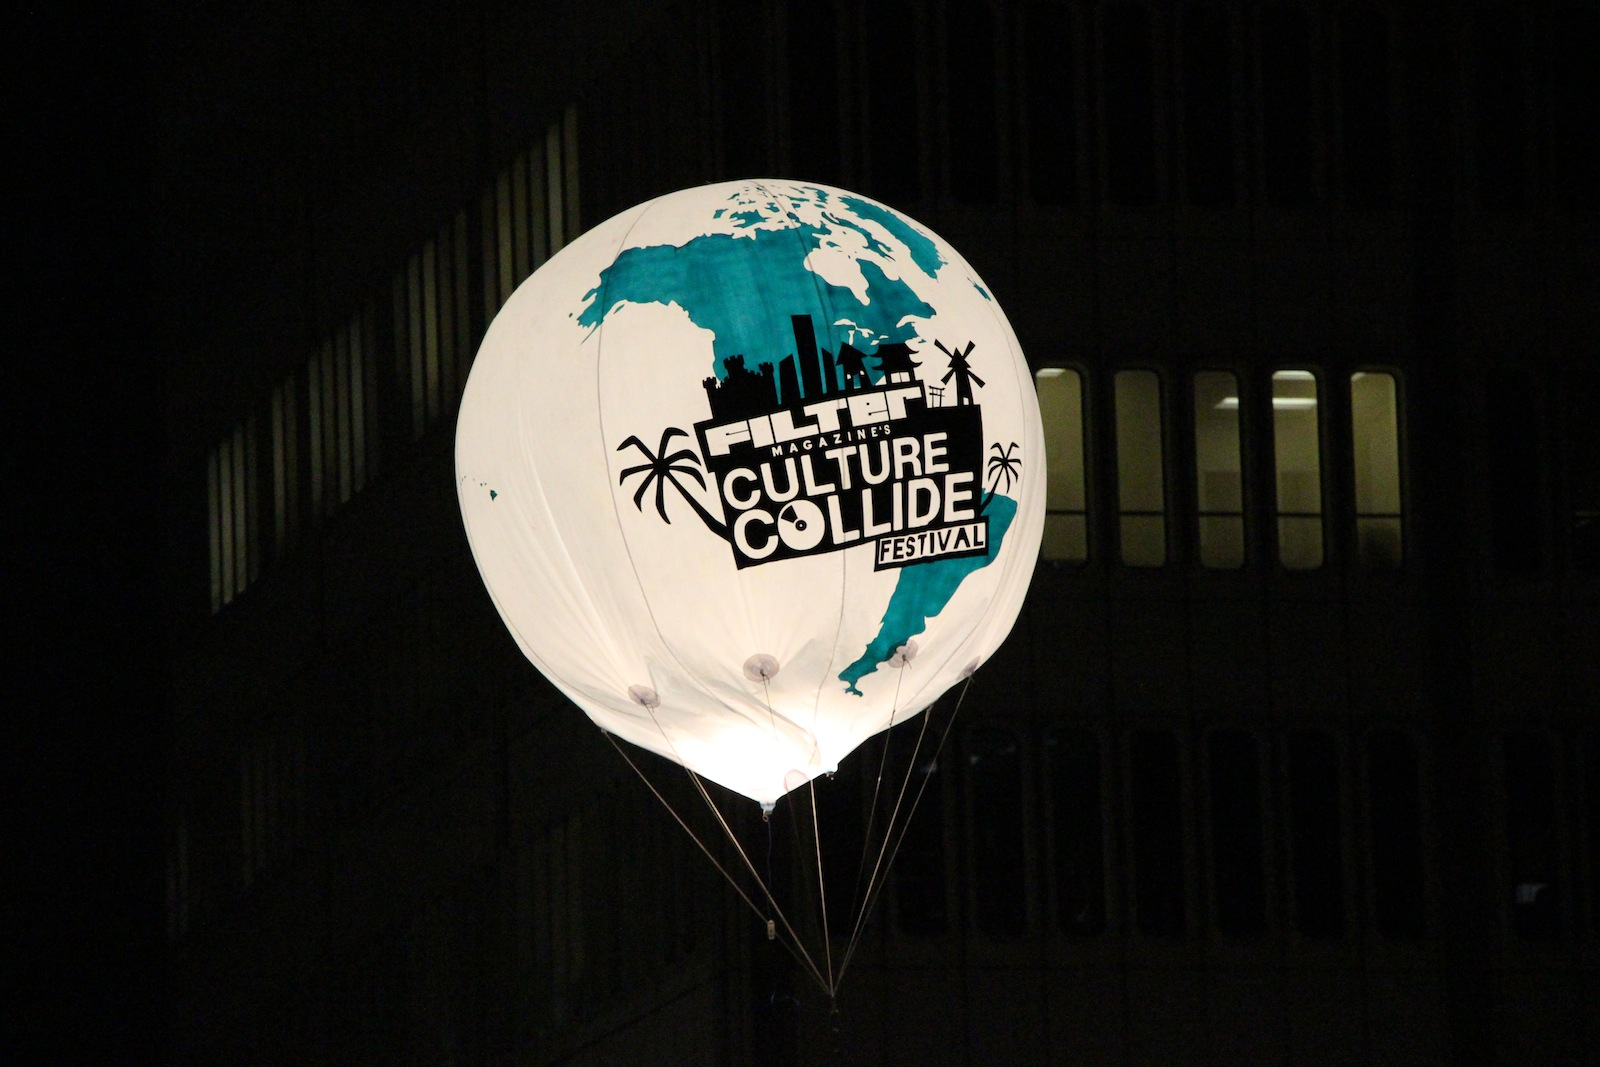 Culture Collide balloon